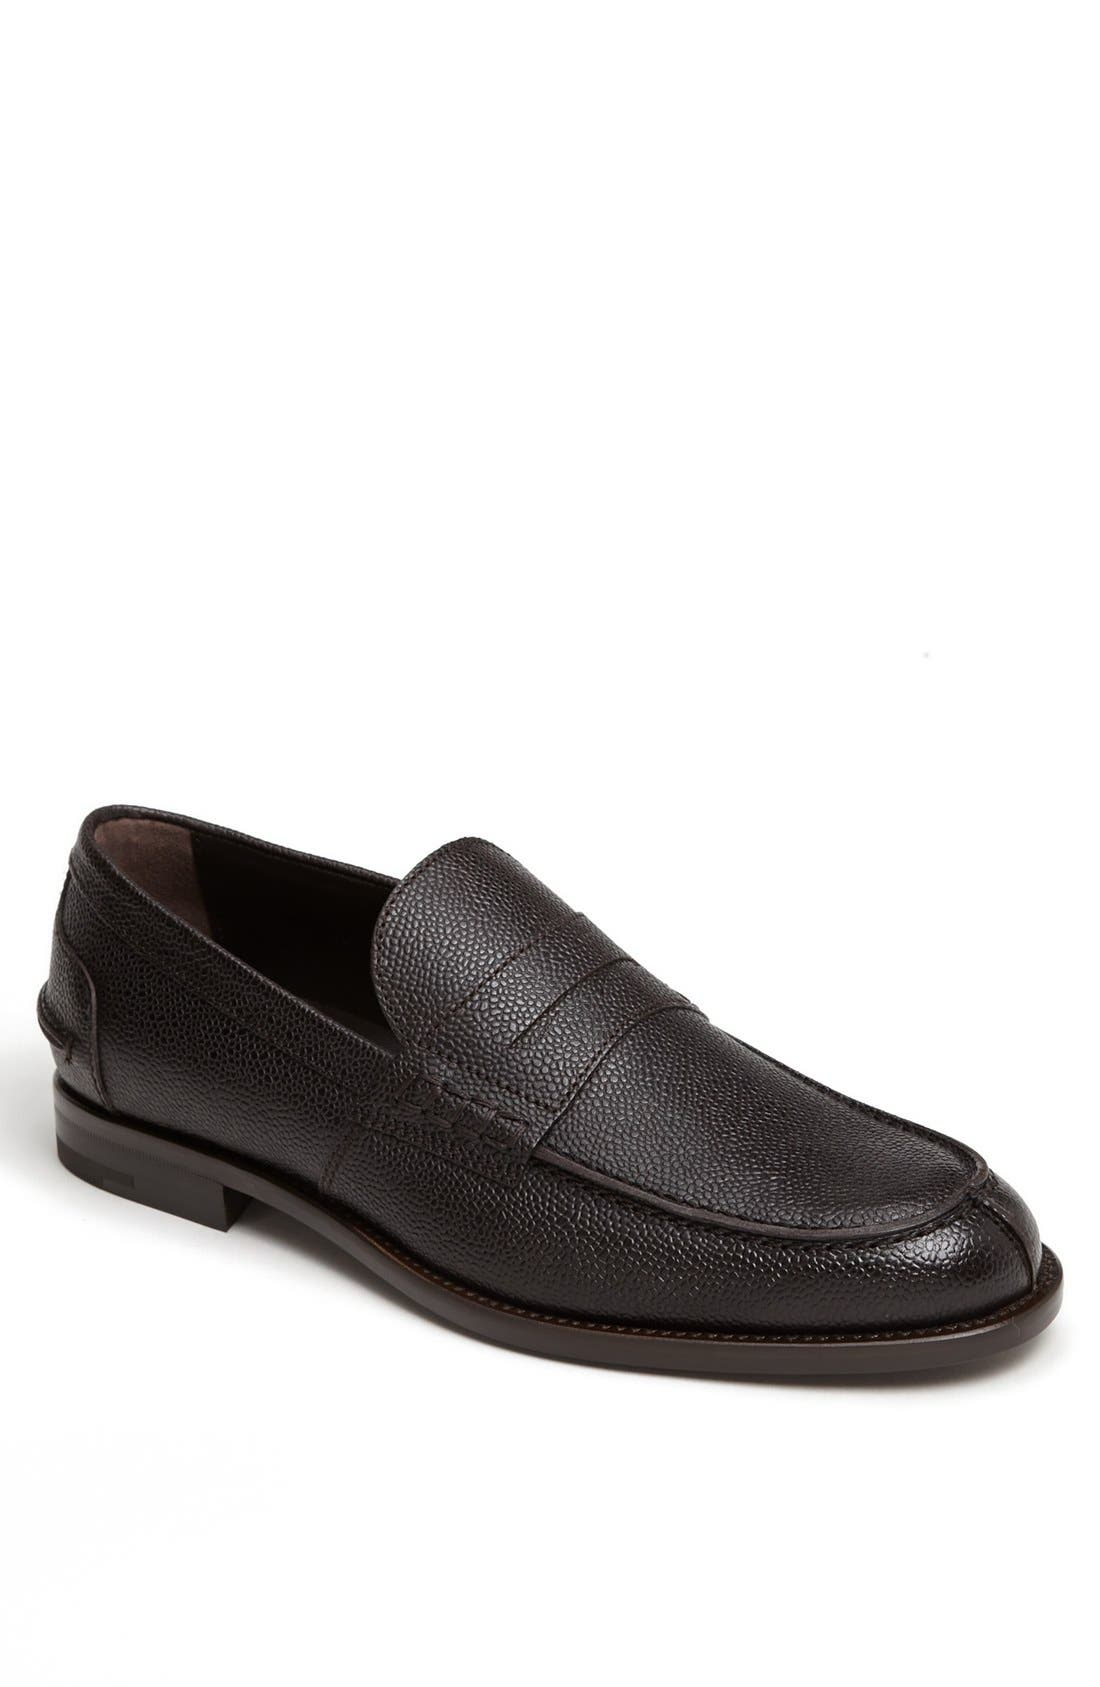 Alternate Image 1 Selected - Ermenegildo Zegna 'College' Penny Loafer